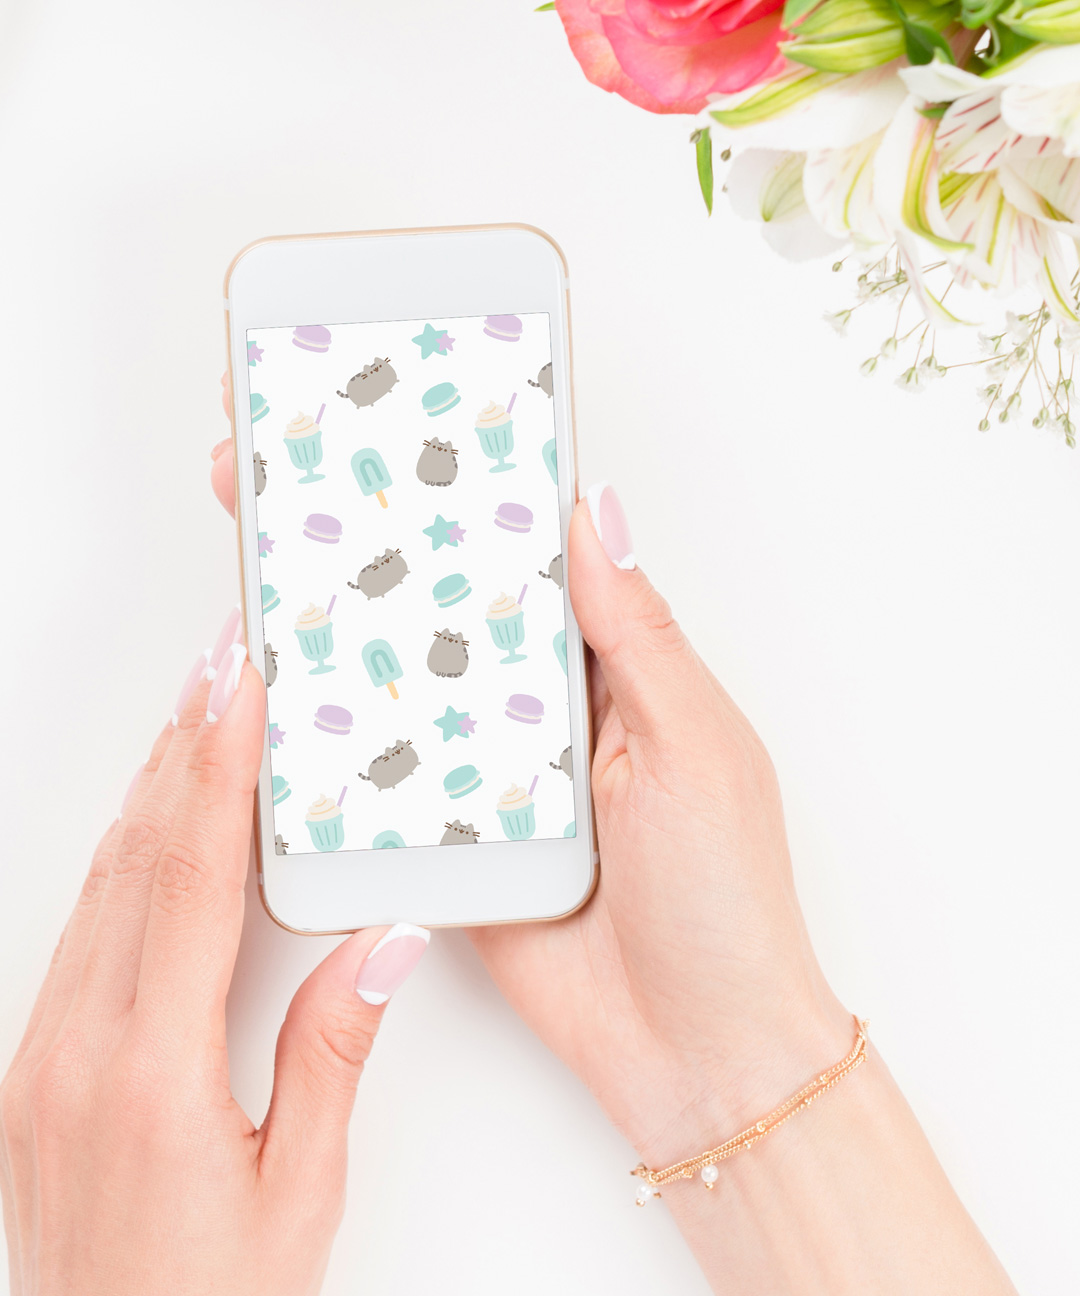 Pusheen Brighten Up Your Phone With 4 New Wallpapers from 1080x1296